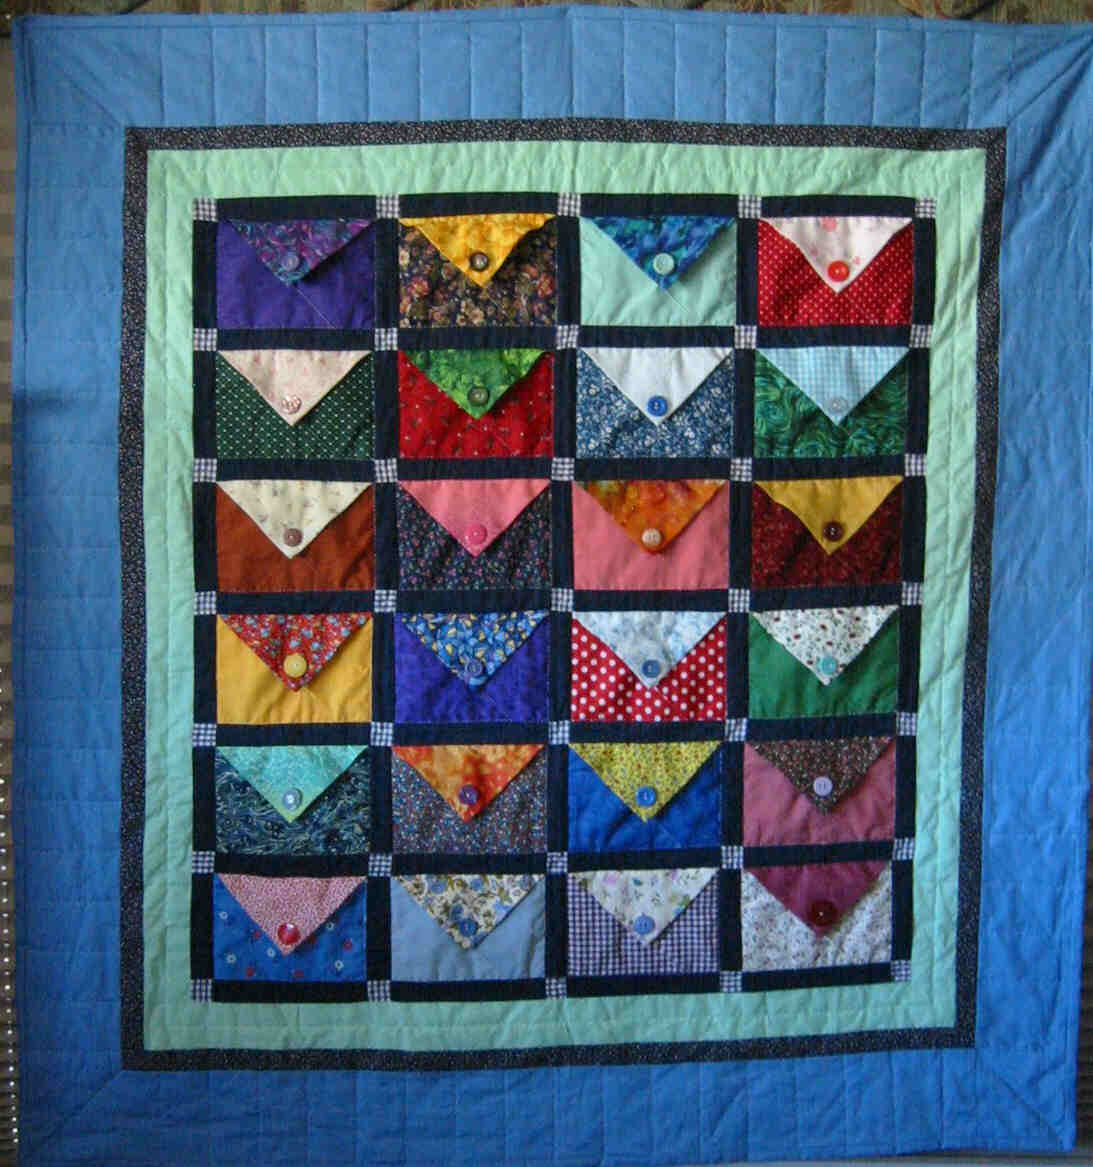 Quilt Knit Run Sew I Spy Quilt Ideas Part 3 Of 3